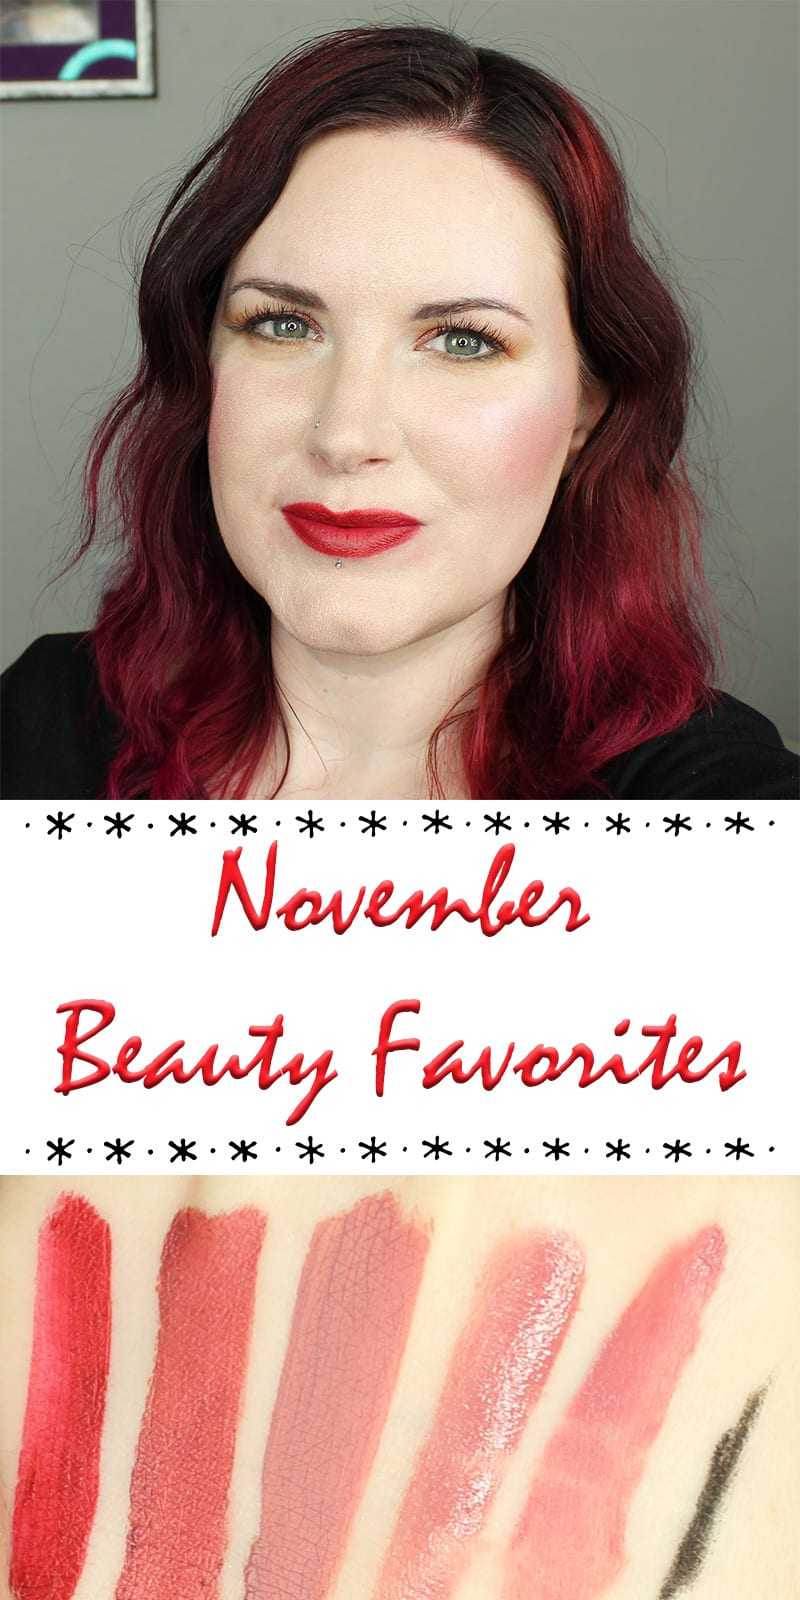 Chatty November Beauty Favorites